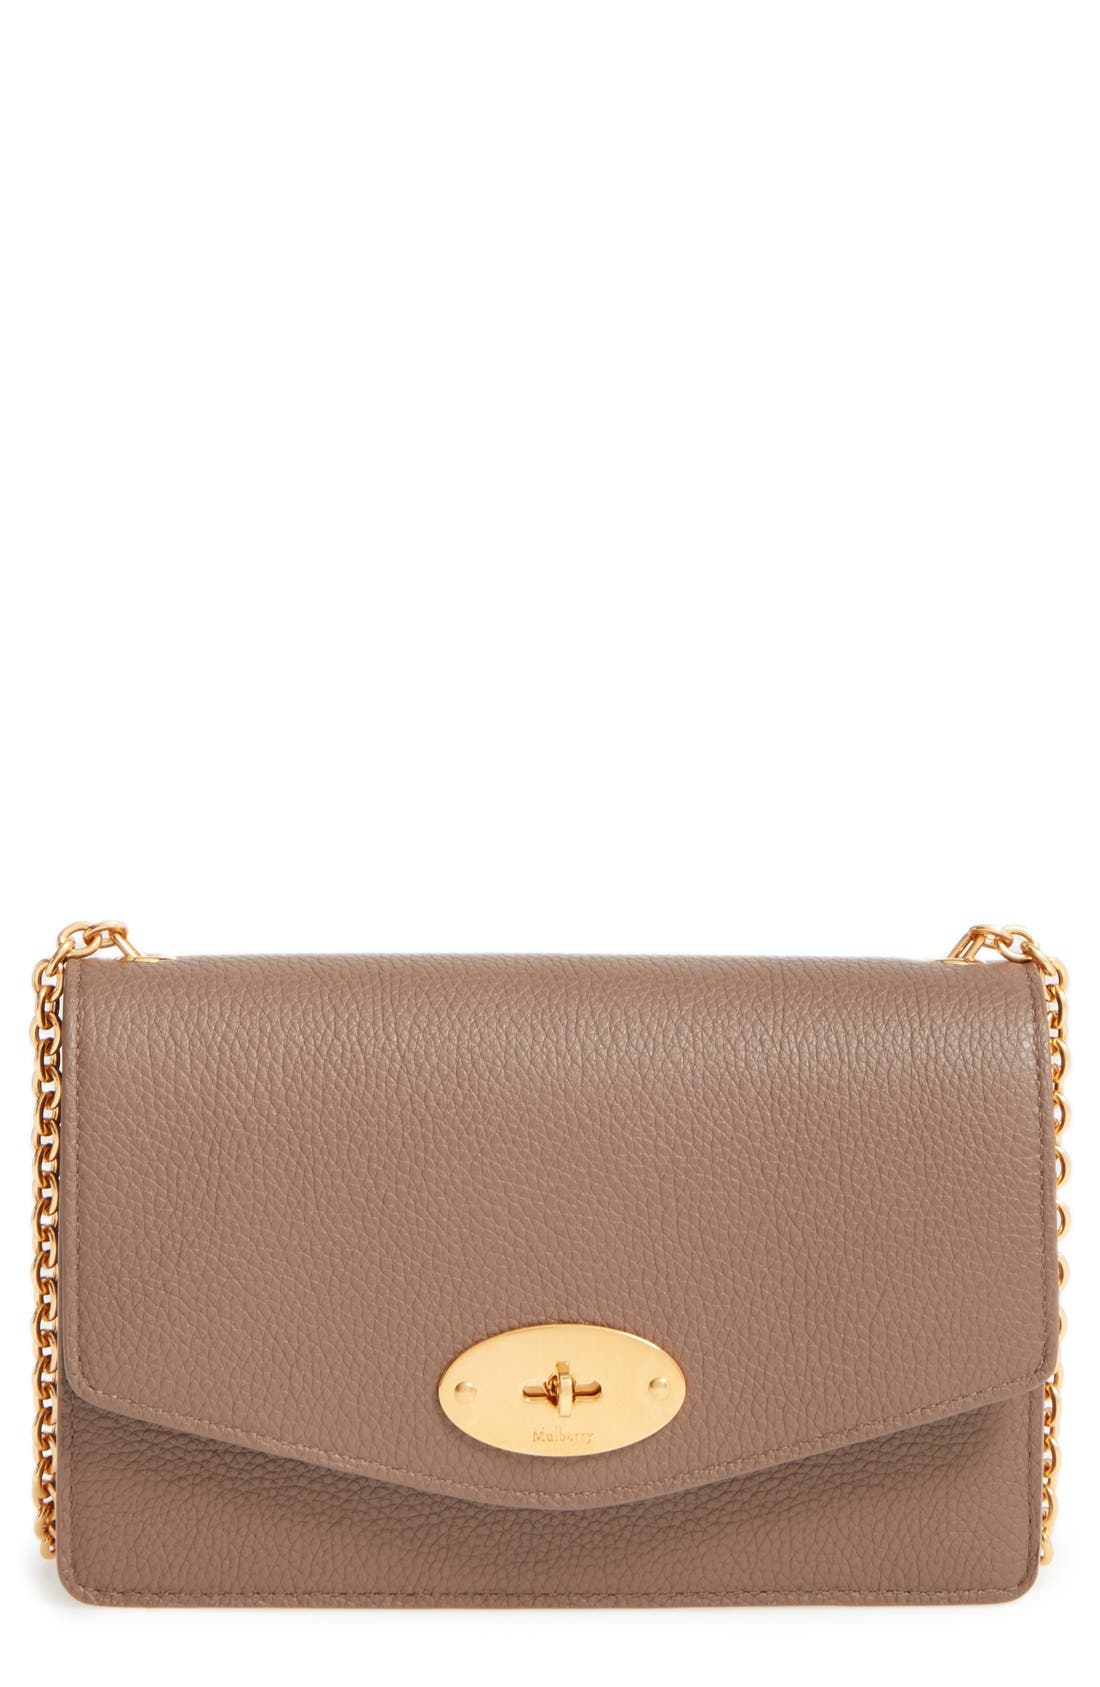 Alternate Image 1 Selected - Mulberry 'Postman's Lock' Leather Crossbody Clutch